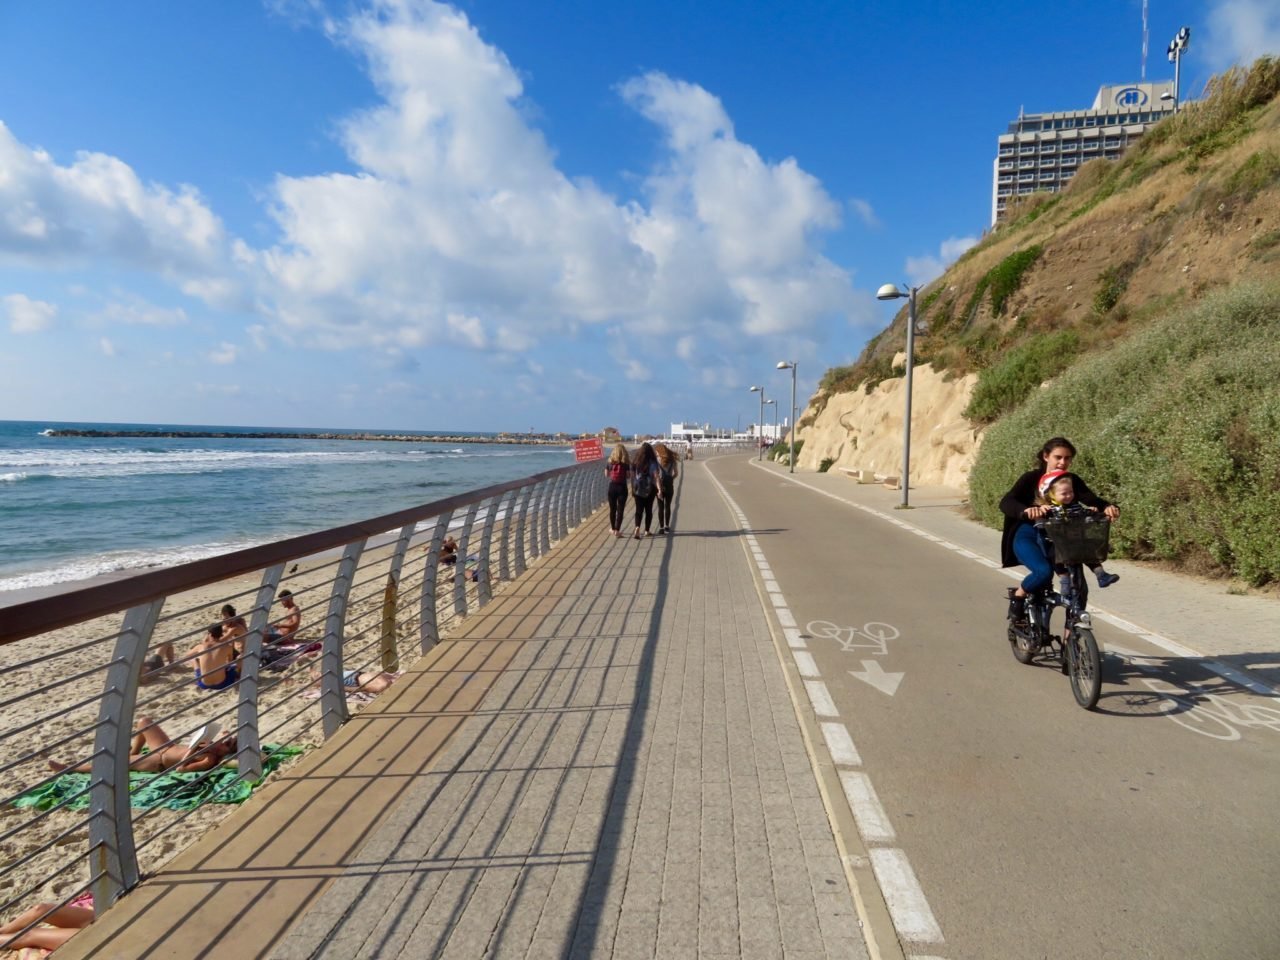 Tel Aviv Beach : The Promenade in front of Surfer's Beach